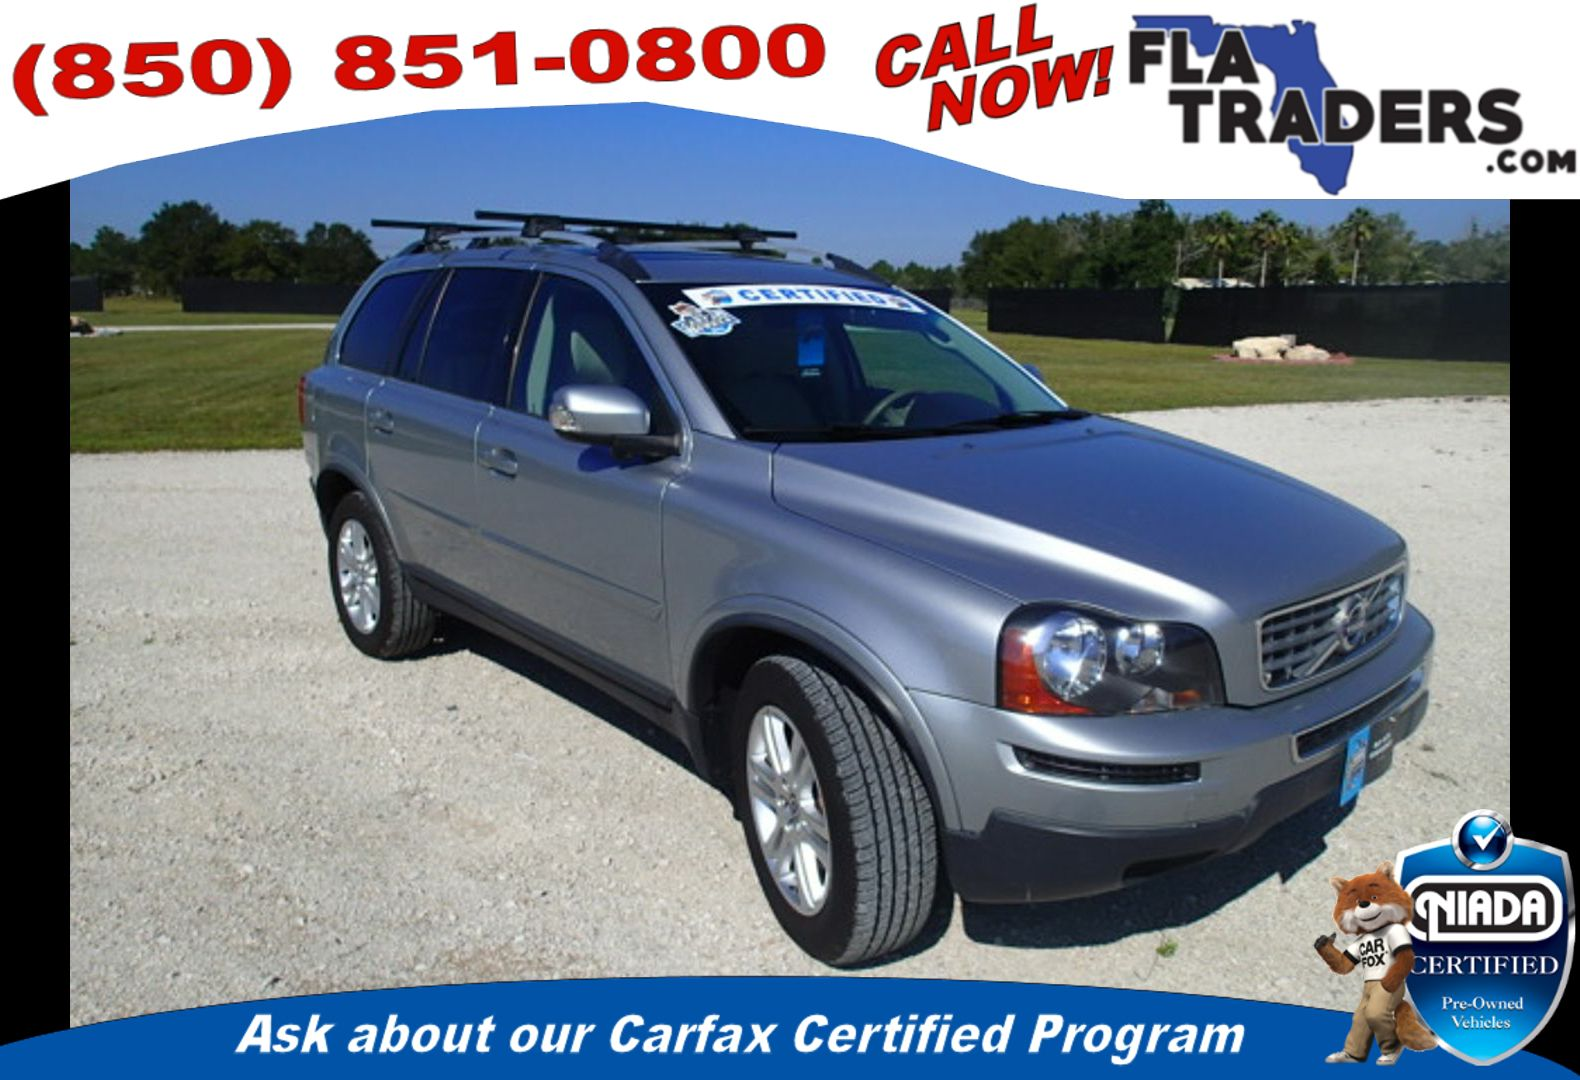 2011 VOLVO XC90 - Florida Traders Used Cars in Panama City FL ...